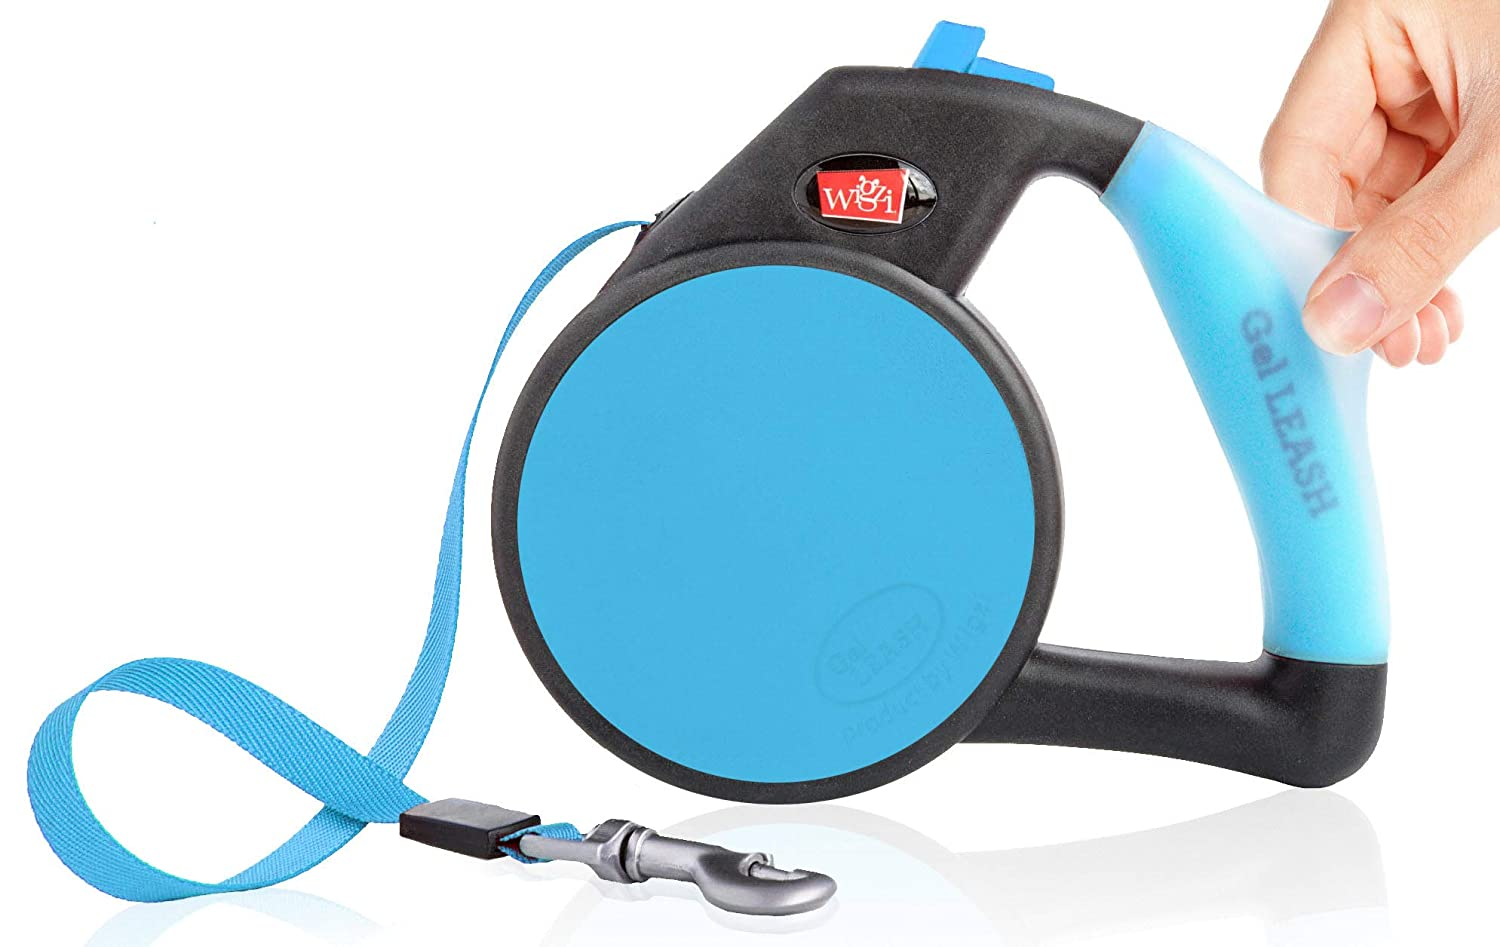 bluee Small bluee Small Dog Leash Retractable Gel Pet Leash Handle bluee Small